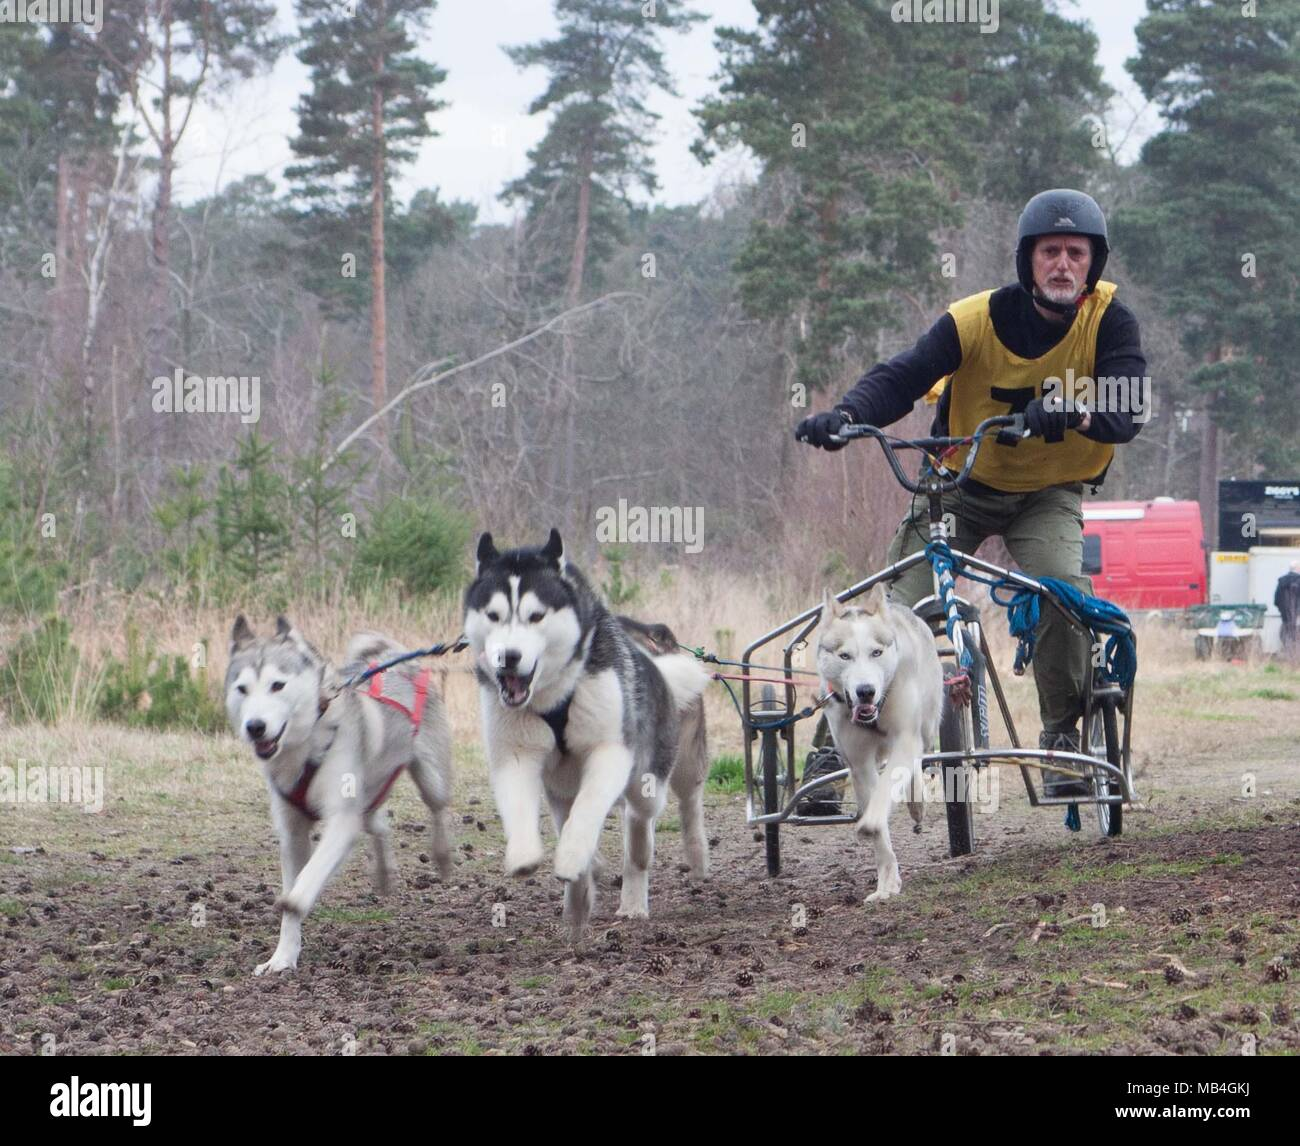 Ascot, UK. 7th April 2018.  - Husky and Malamute Dog Sled racing Credit: Andrew Spiers/Alamy Live News - Stock Image